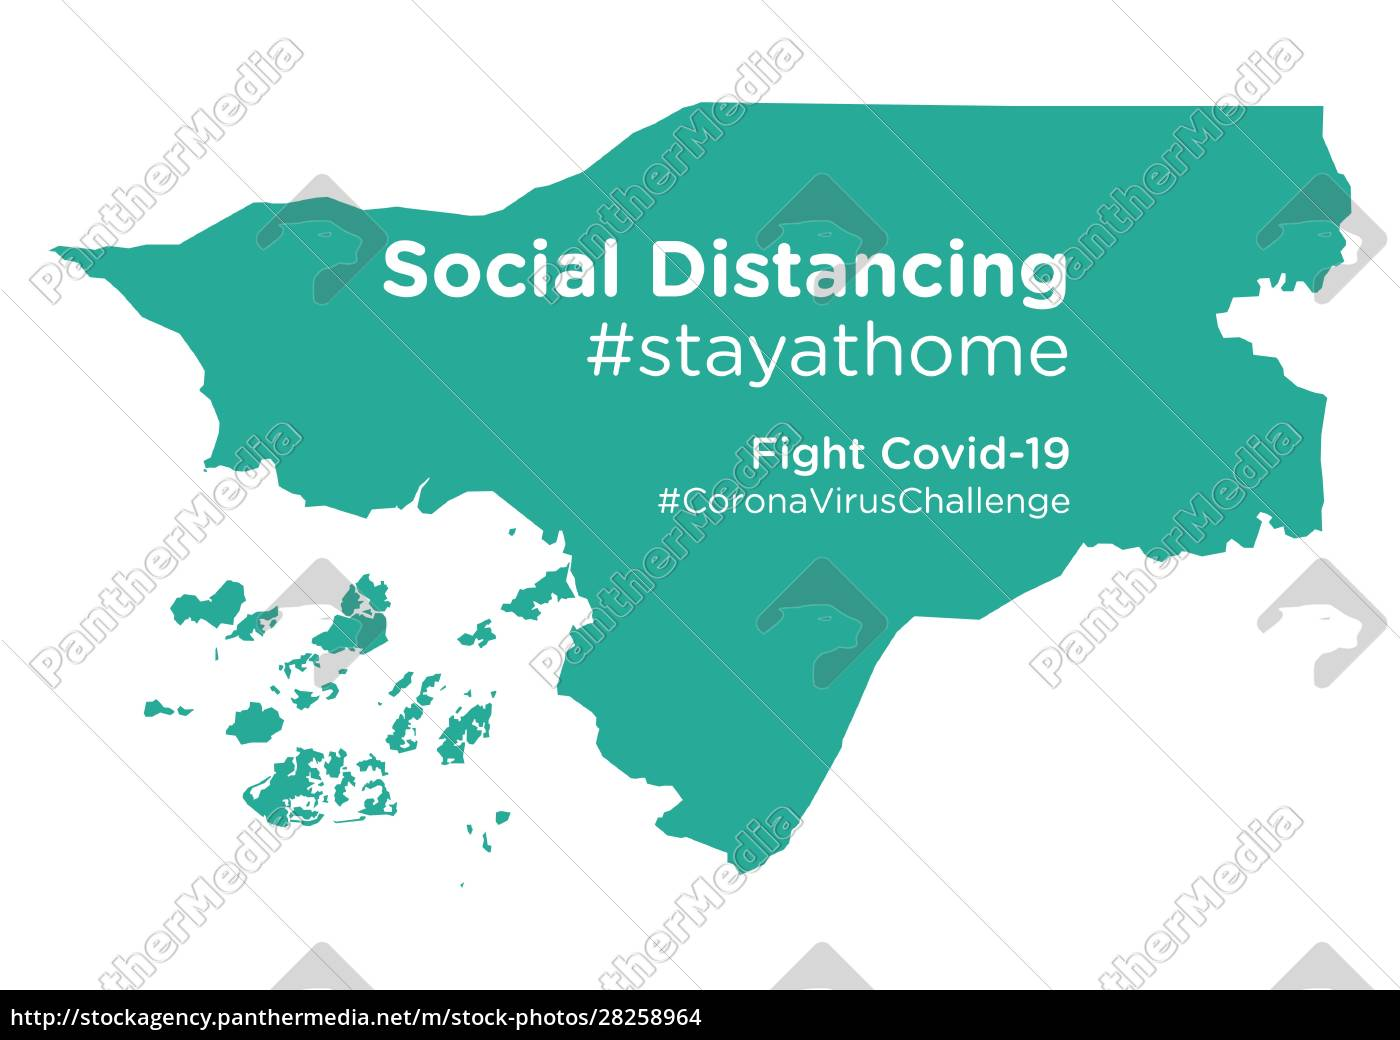 guinea-bissau, map, with, social, distancing, stayathome - 28258964